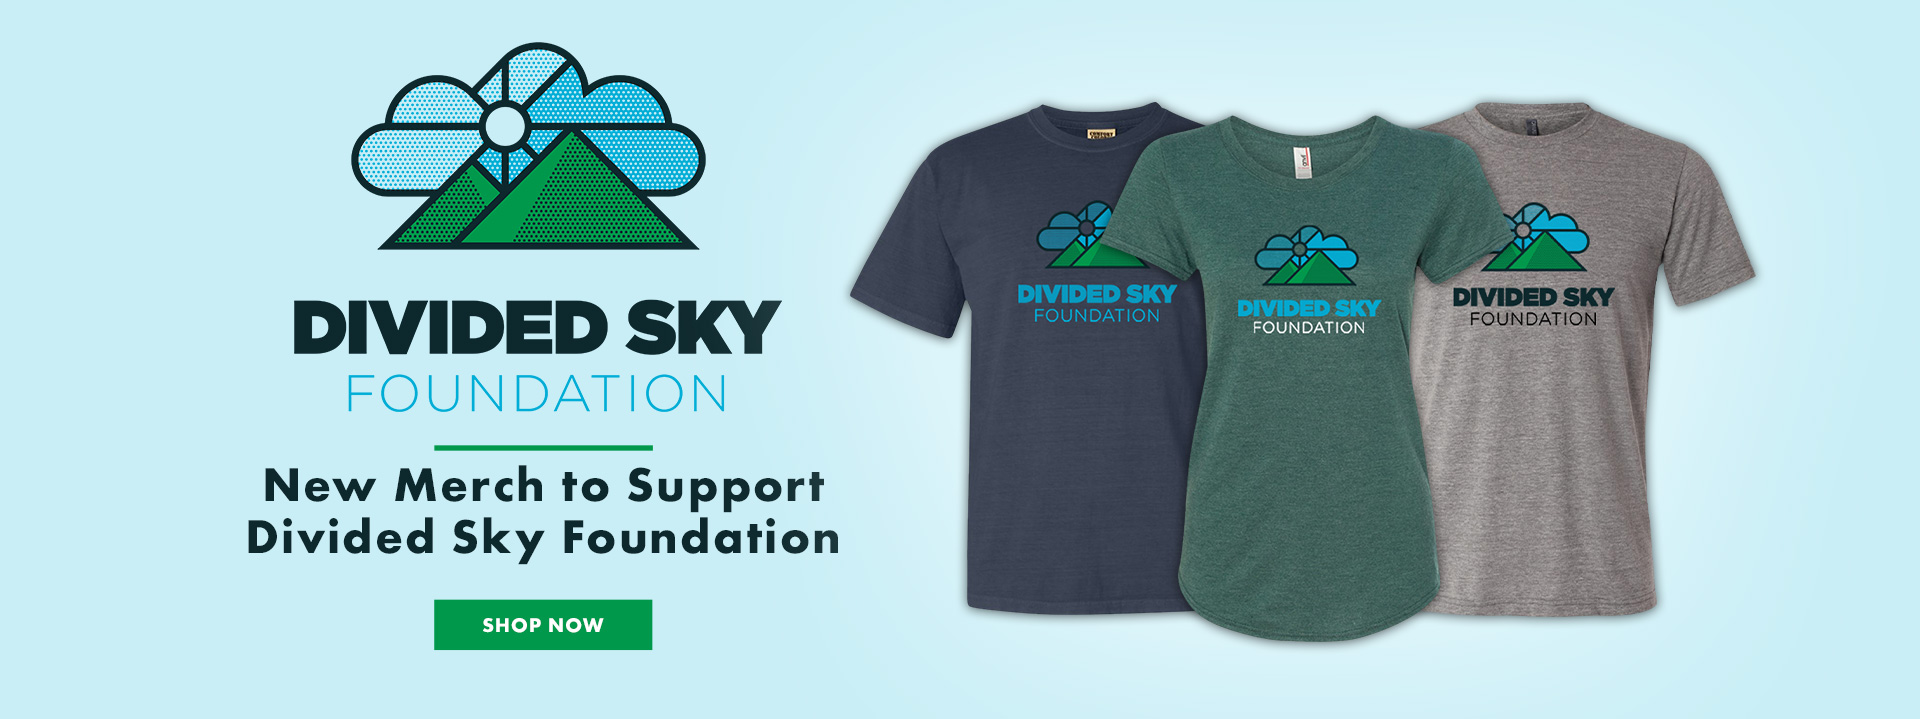 Divided Sky Foundation Merch Now Available